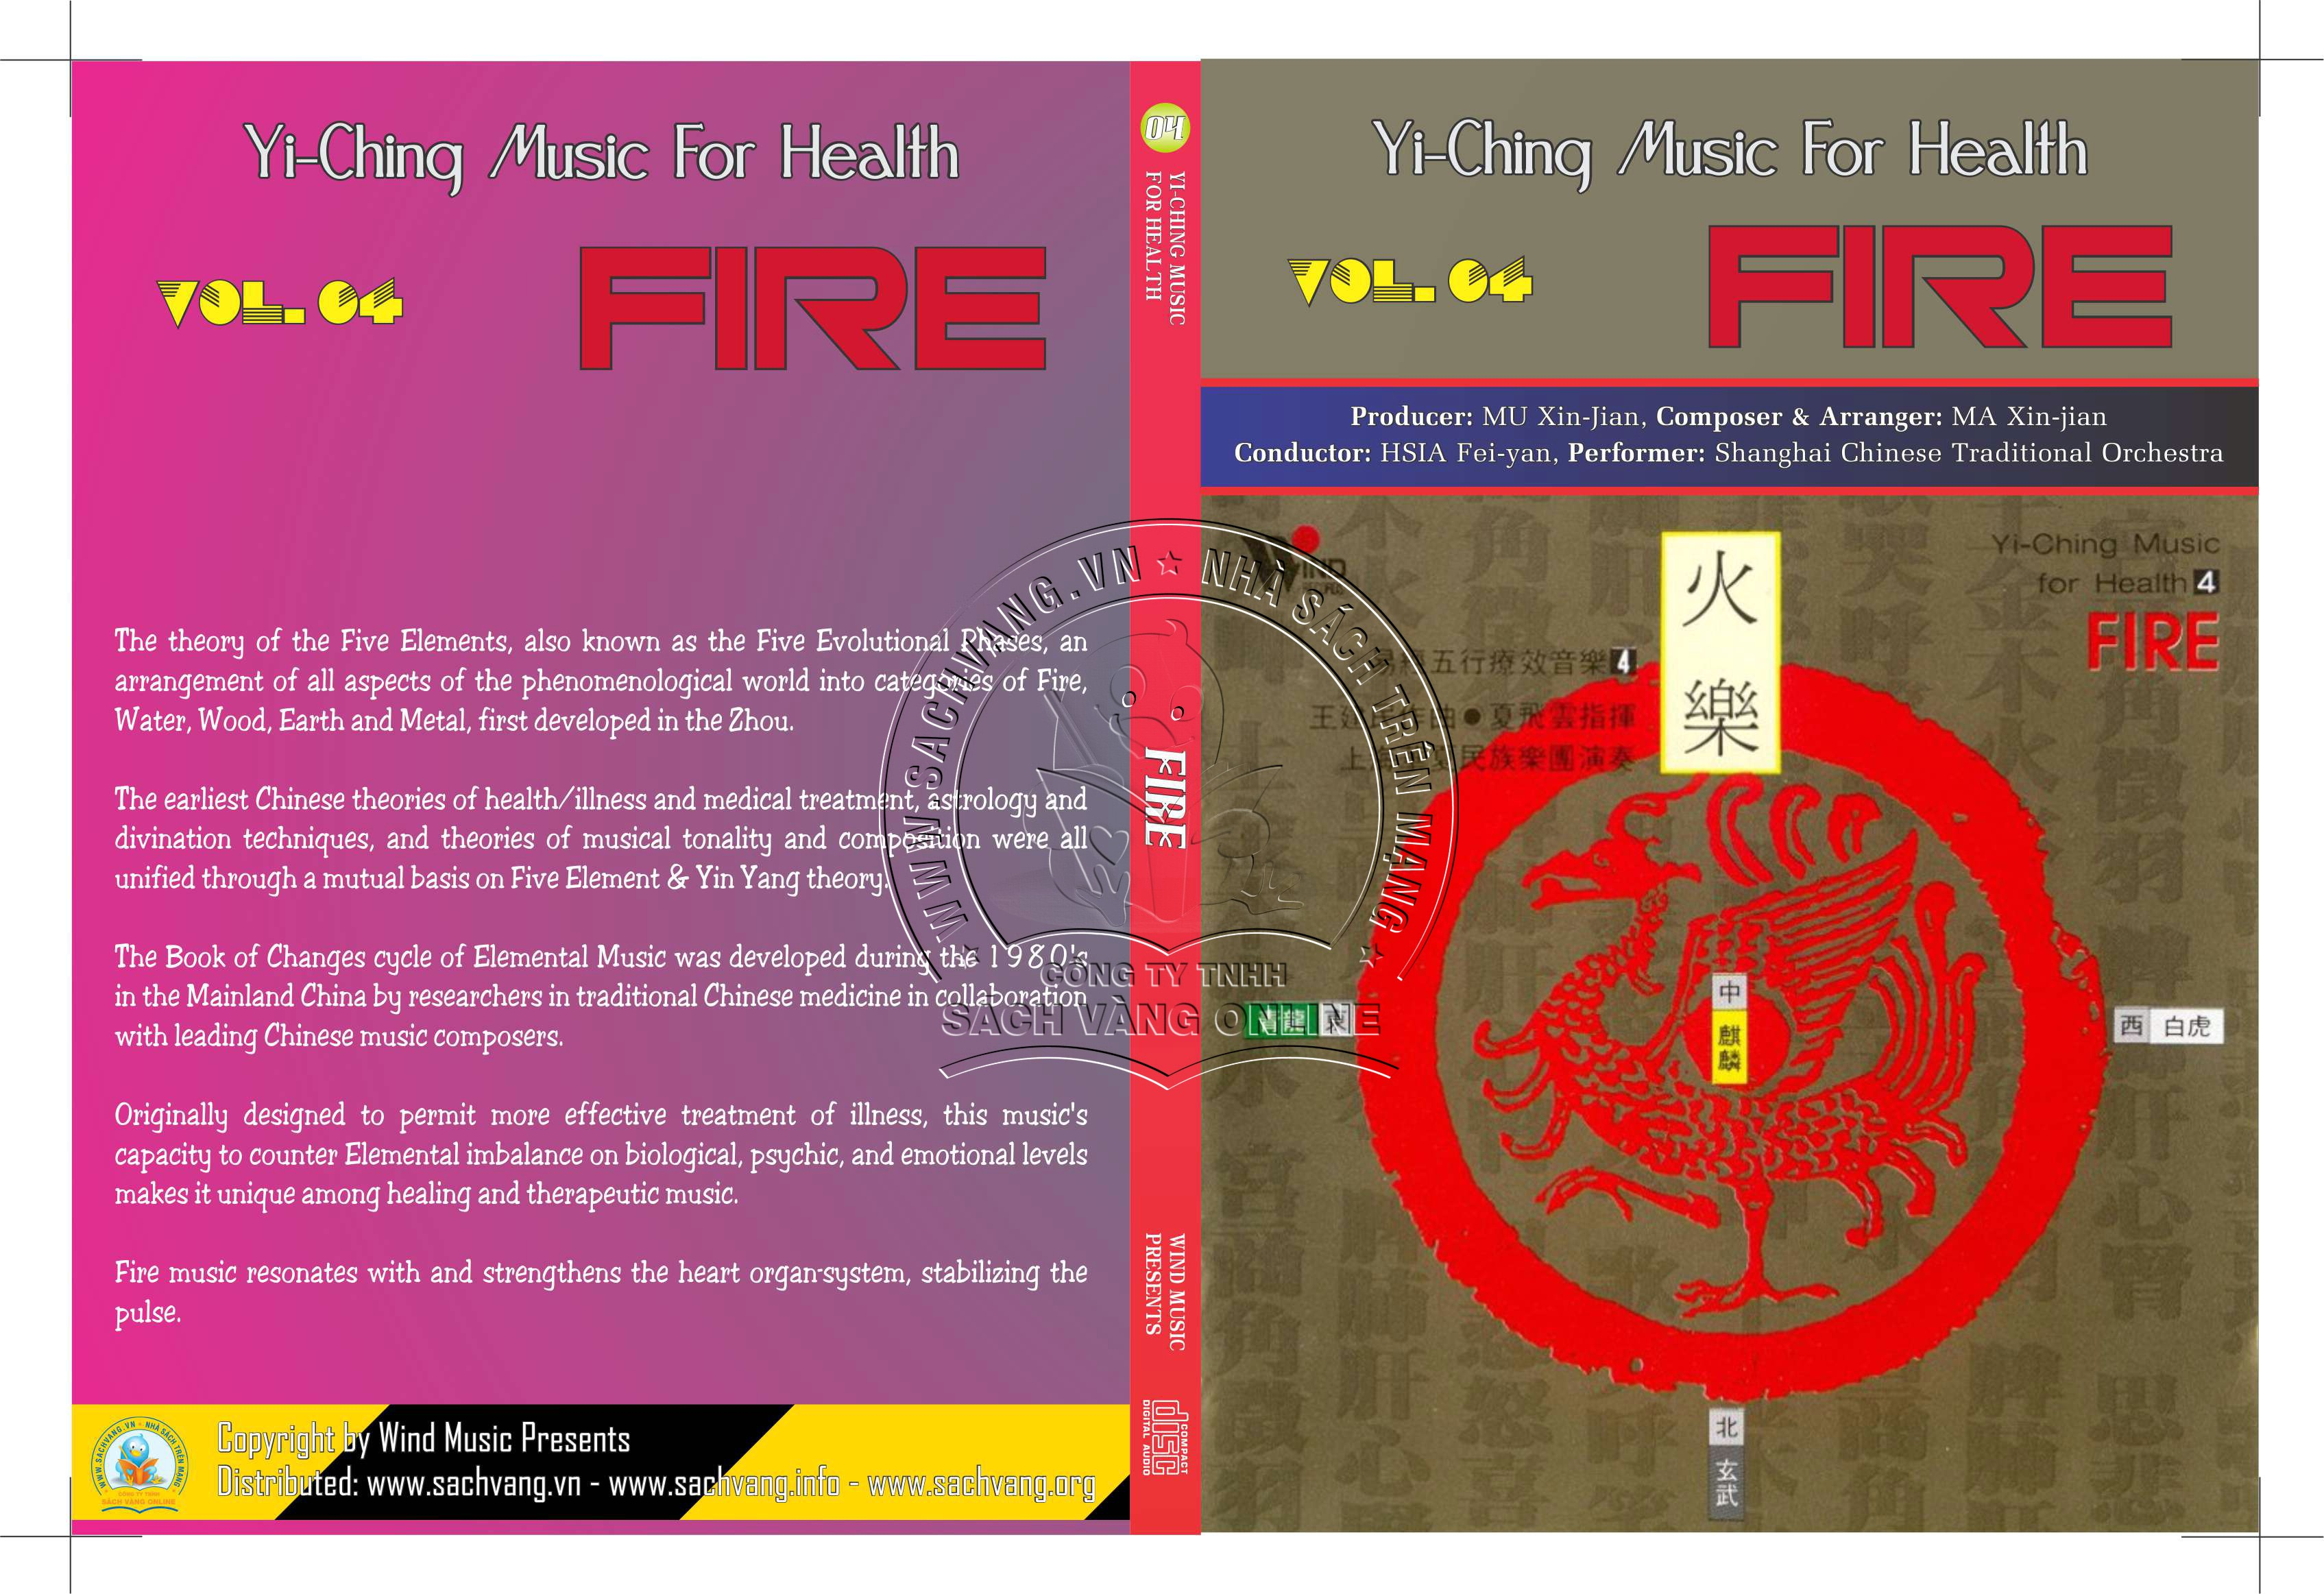 04-Yi-Ching Music For Health - Fire